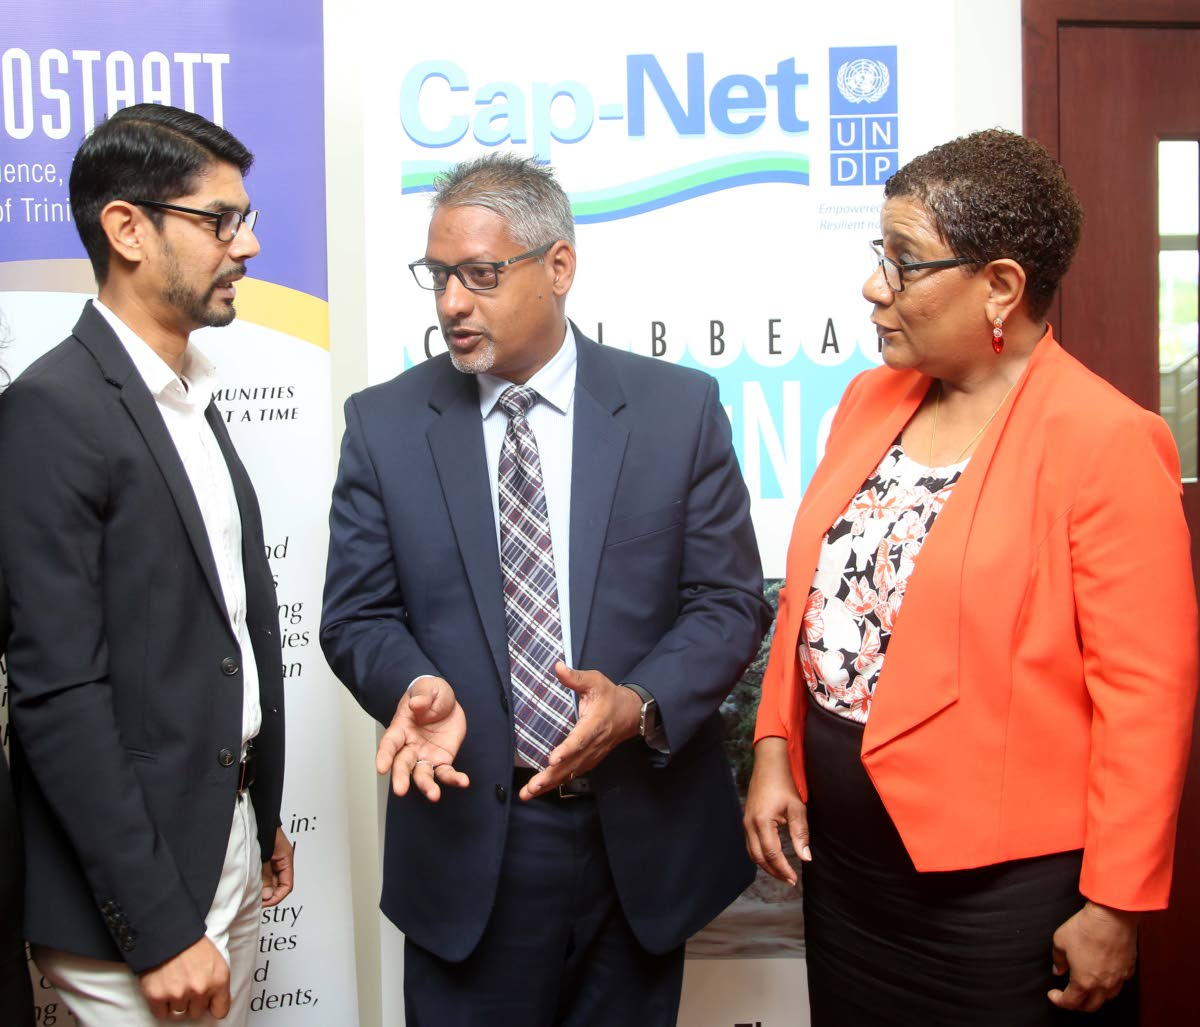 Agriculture Minister Clarence Rambharat (centre) speaks with Dr Ronald Roopnarine - network manager, Caribbean Waterfront Cap - Net UNDP and Dr Gillian Paul, president of COSTAATT at the opening ceremony of the Integrated Urban Flood Risk Mitigation and Management workshop.     PHOTO BY VASHTI SINGH